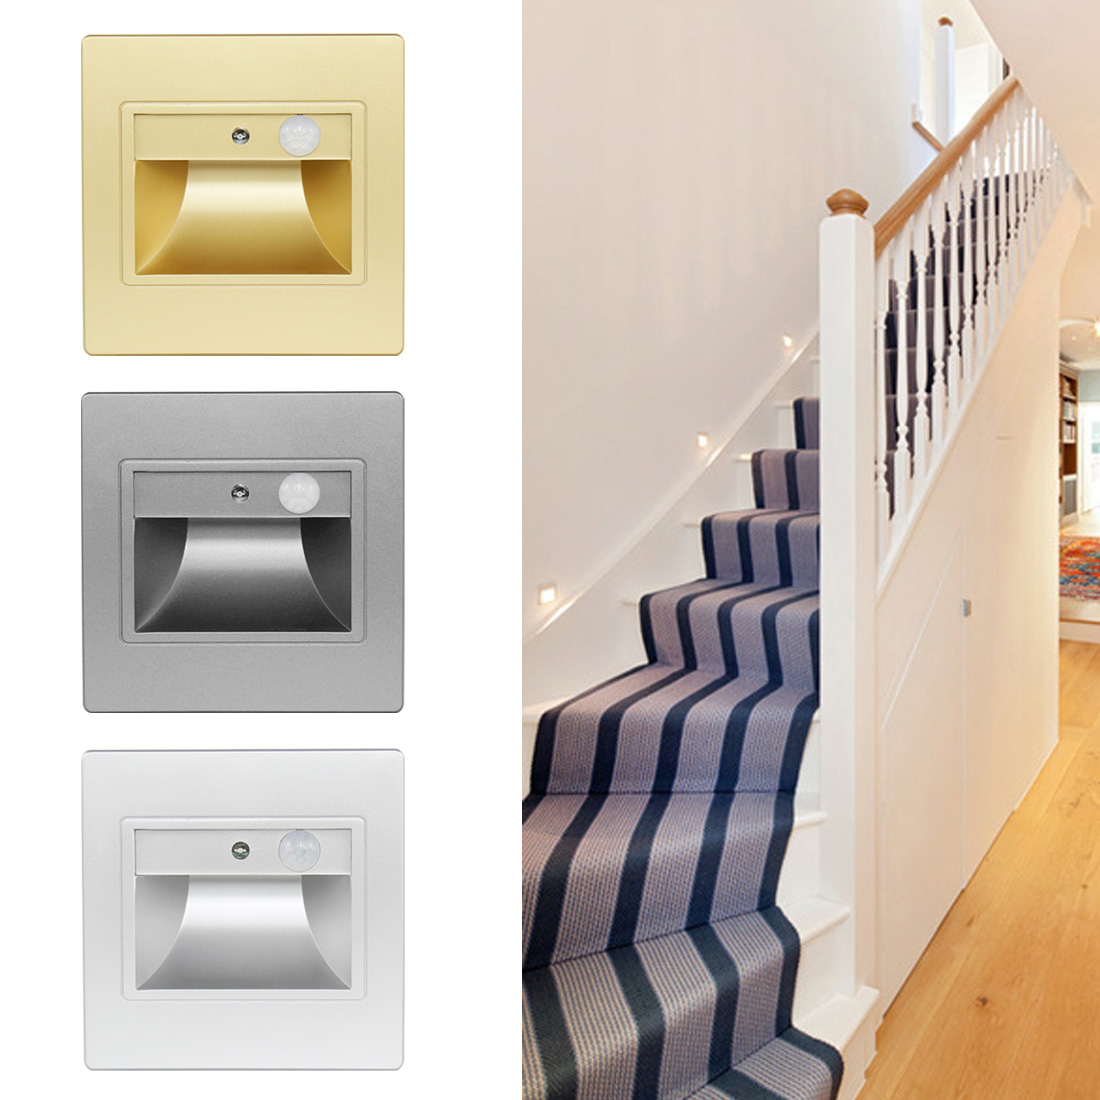 Light Sensor Infrared Human Body Induction Recessed Deck Light Floor Lights Led Underground Lamps Steady Ip65 Led Step Stair Light Pir Motion Detector Led Lamps